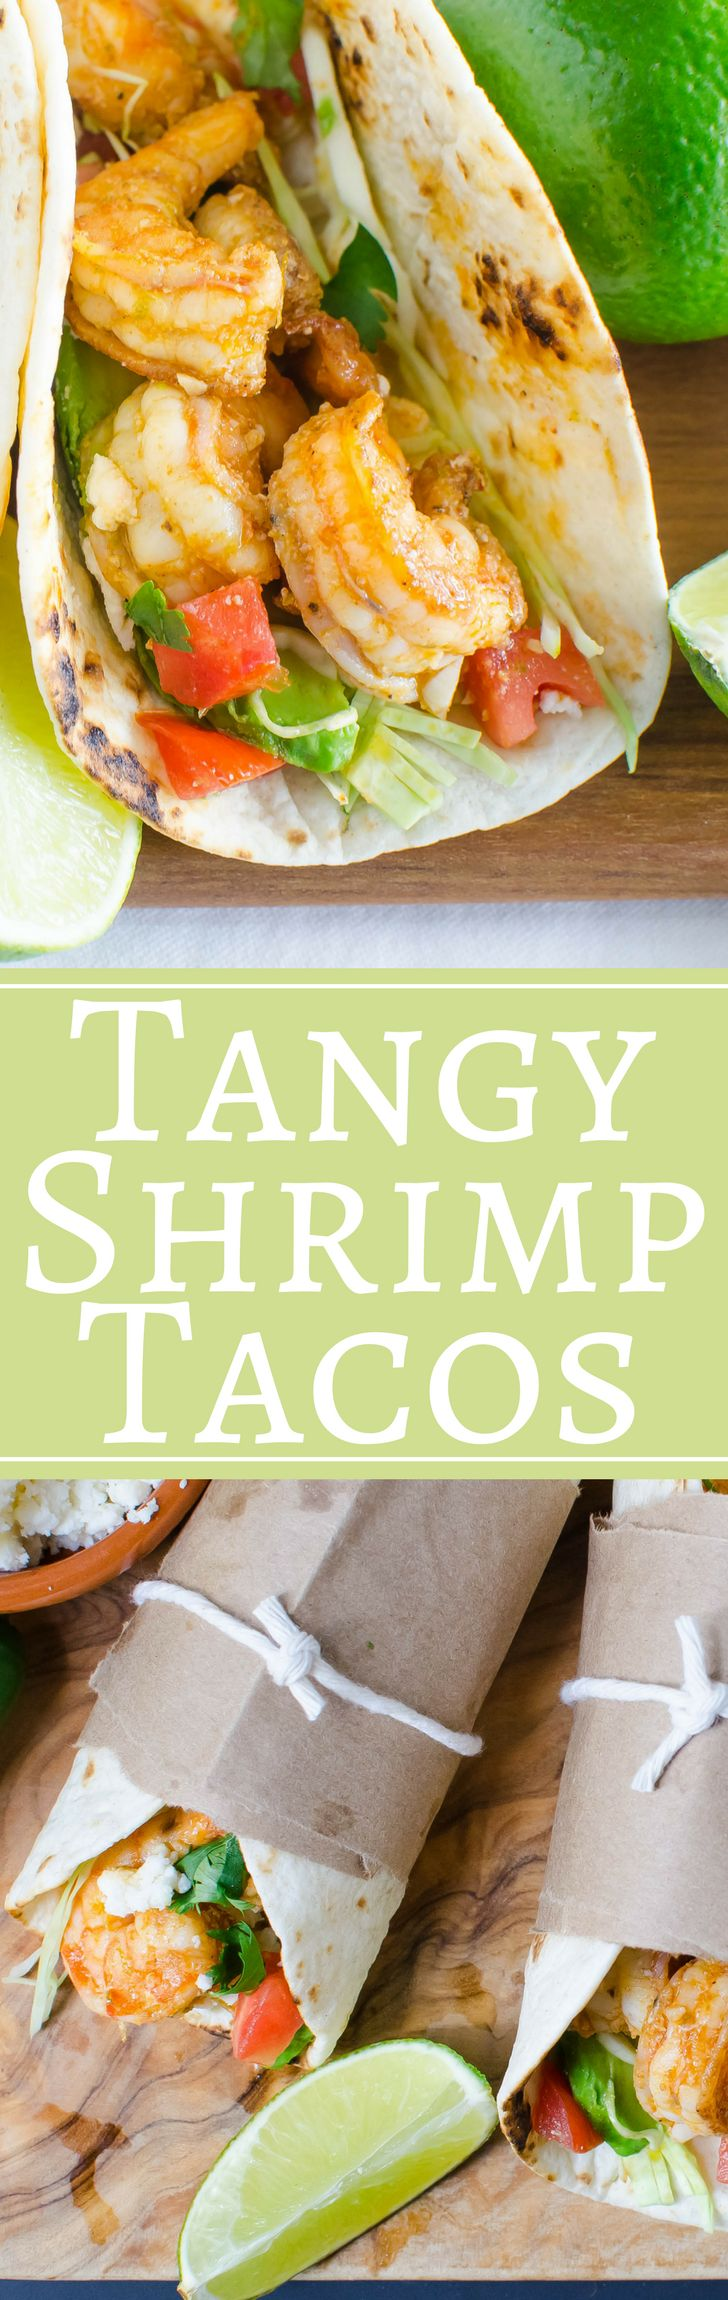 Love seafood tacos? This simple and easy recipe for Tangy Shrimp Tacos is a notch above your standard! With plenty of garlic and lime, the prawns are coated with a bright glaze that wakes up your taste buds! Use your favorite toppings for this family favo